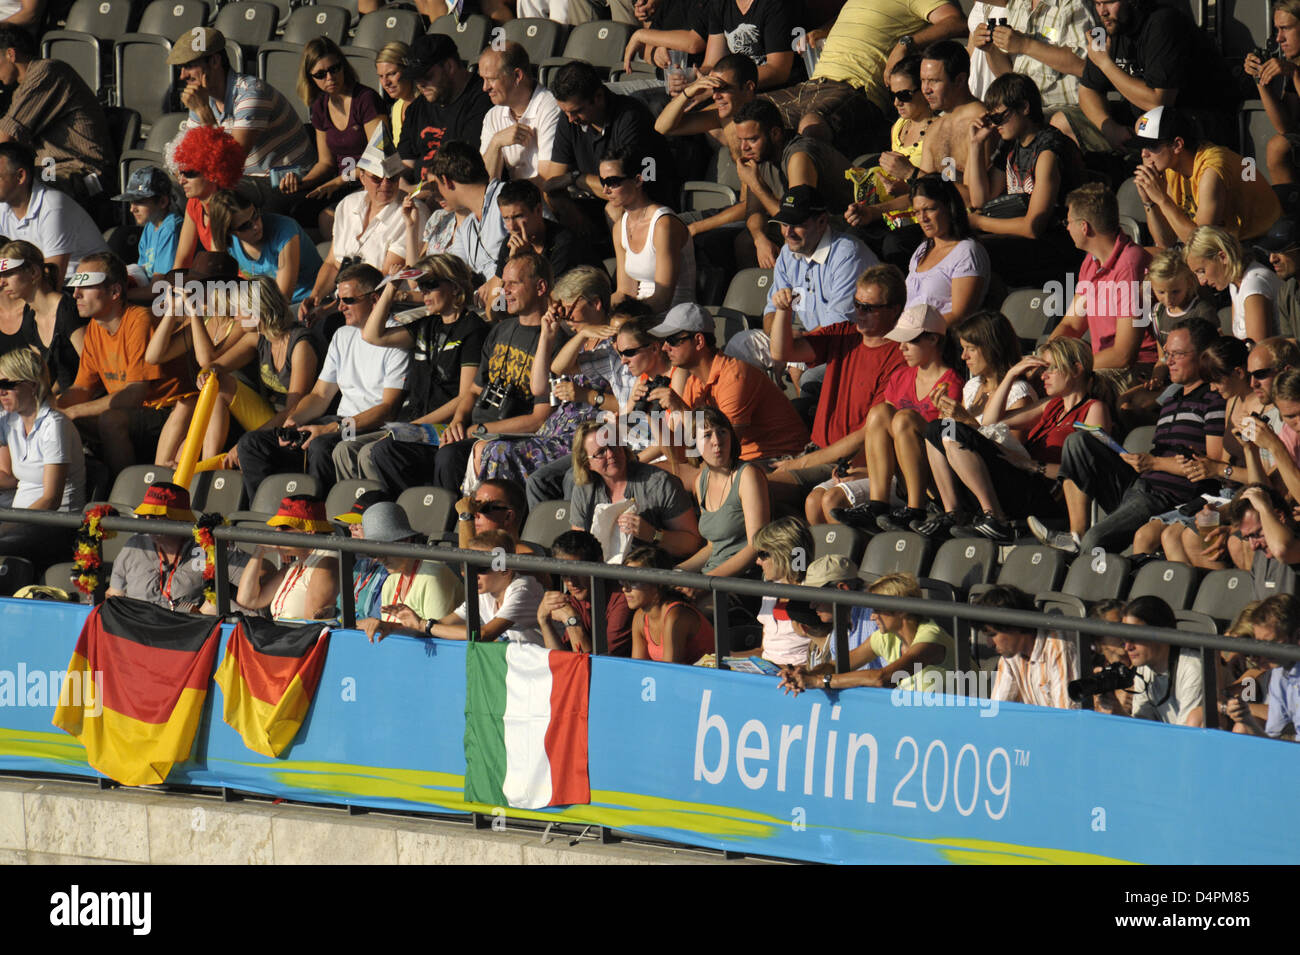 Spectators sit on the stands at the 12th IAAF World Championships in Athletics at the Olympic Stadium in Berlin, - Stock Image